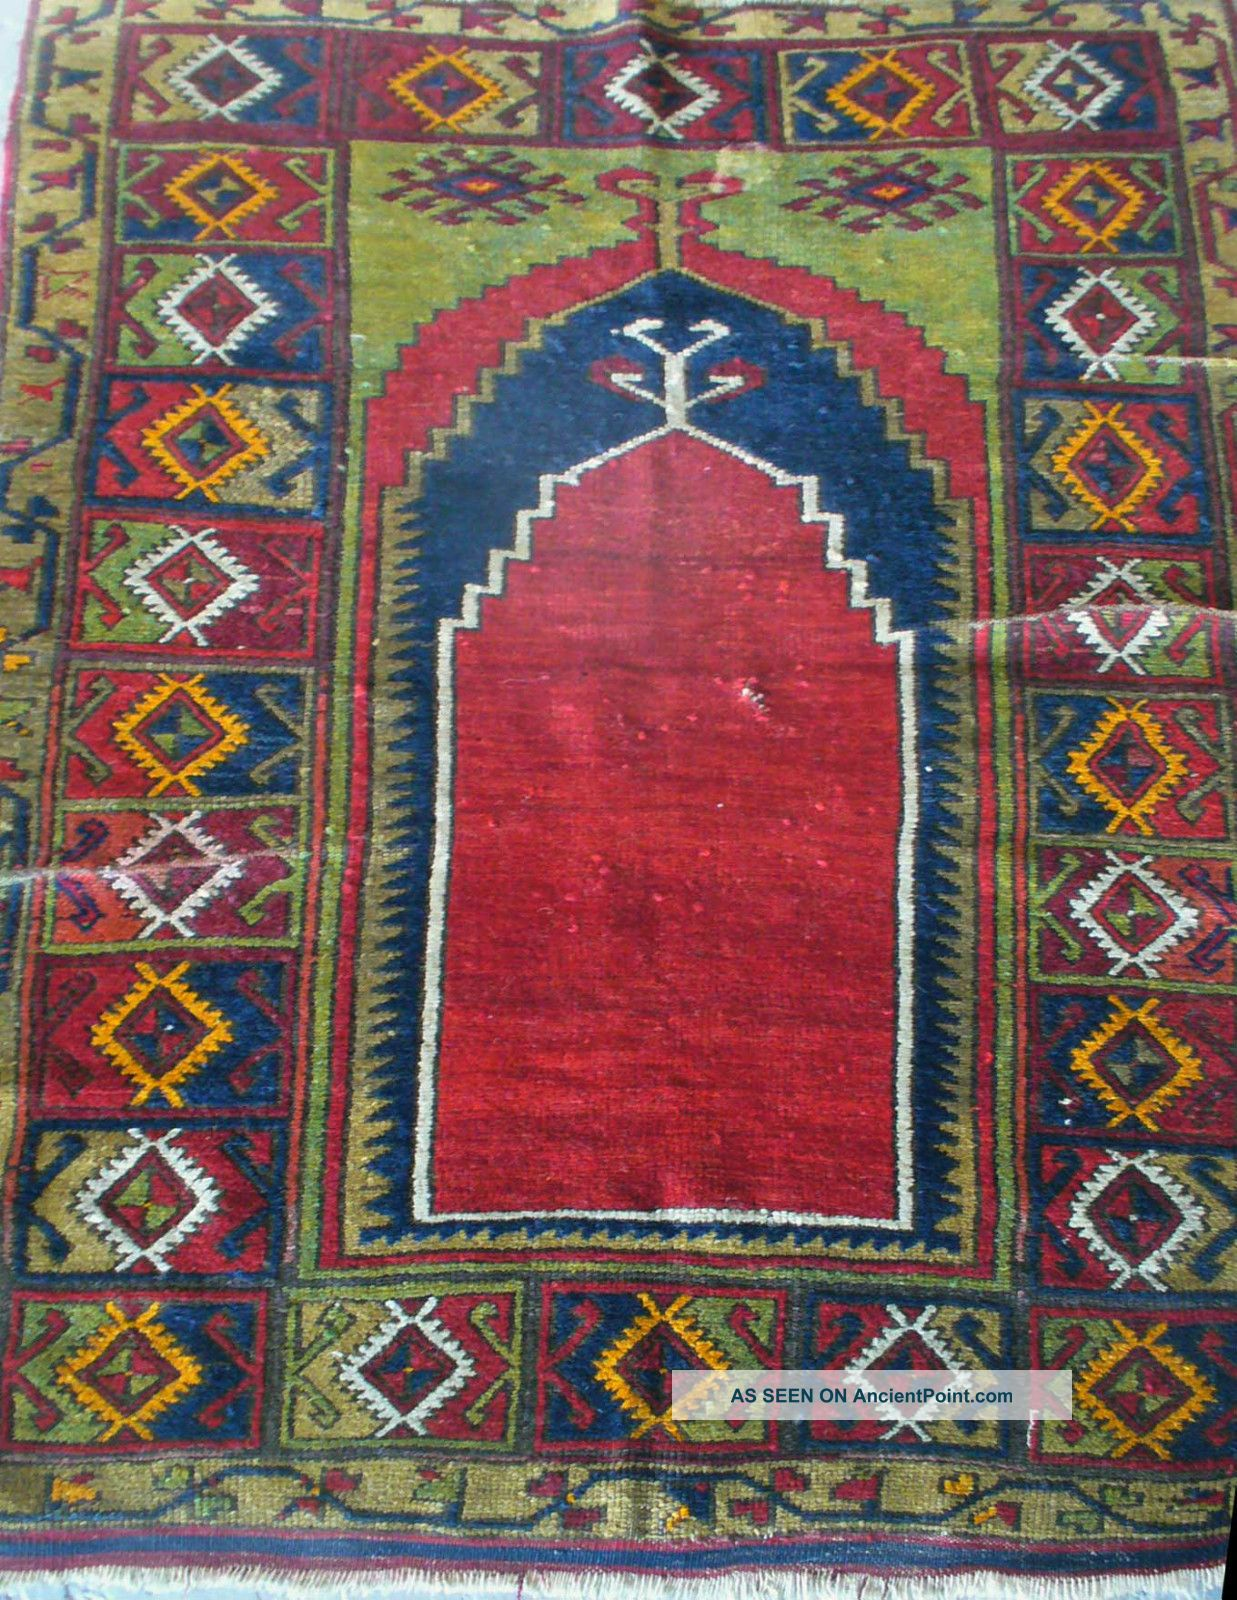 Late 19th Century Antique Turkish Prayer Rug - Reading Pa Estate Find Medium (4x6-6x9) photo